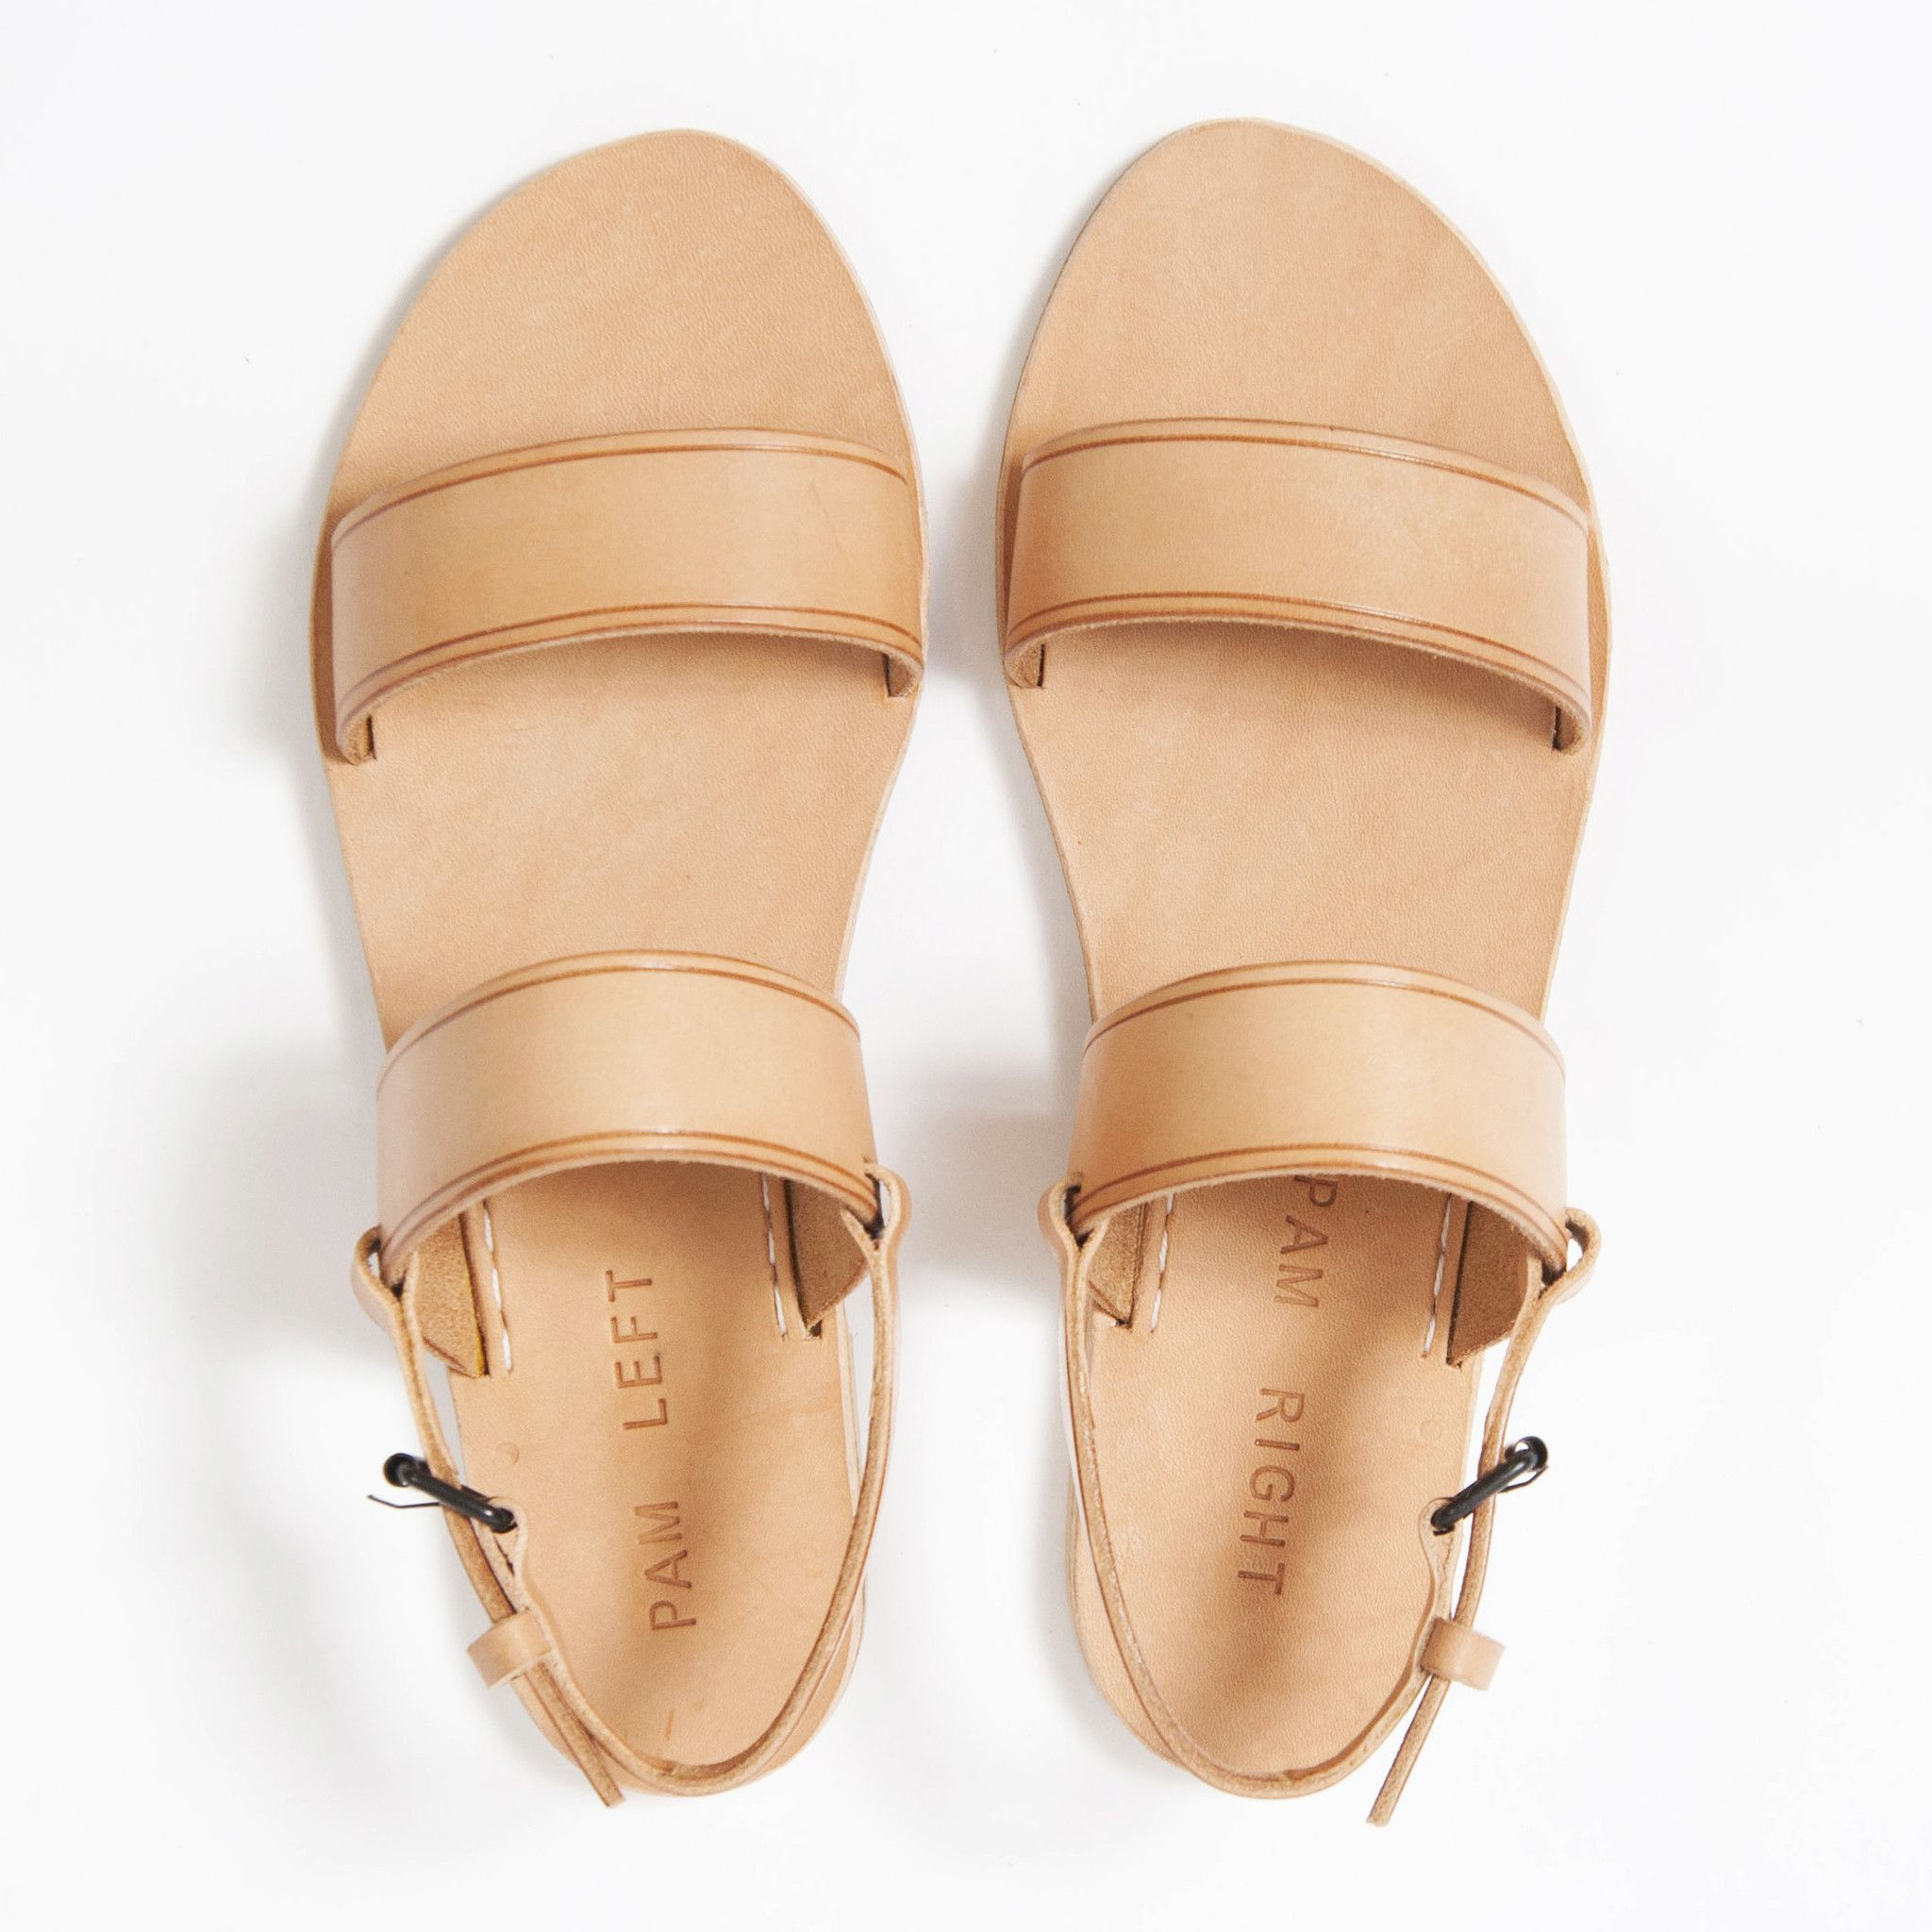 e8677176f24a1 The PAM LEFT PAM RIGHT classic two strap sandal in natural nude vegetable  tan leather upper